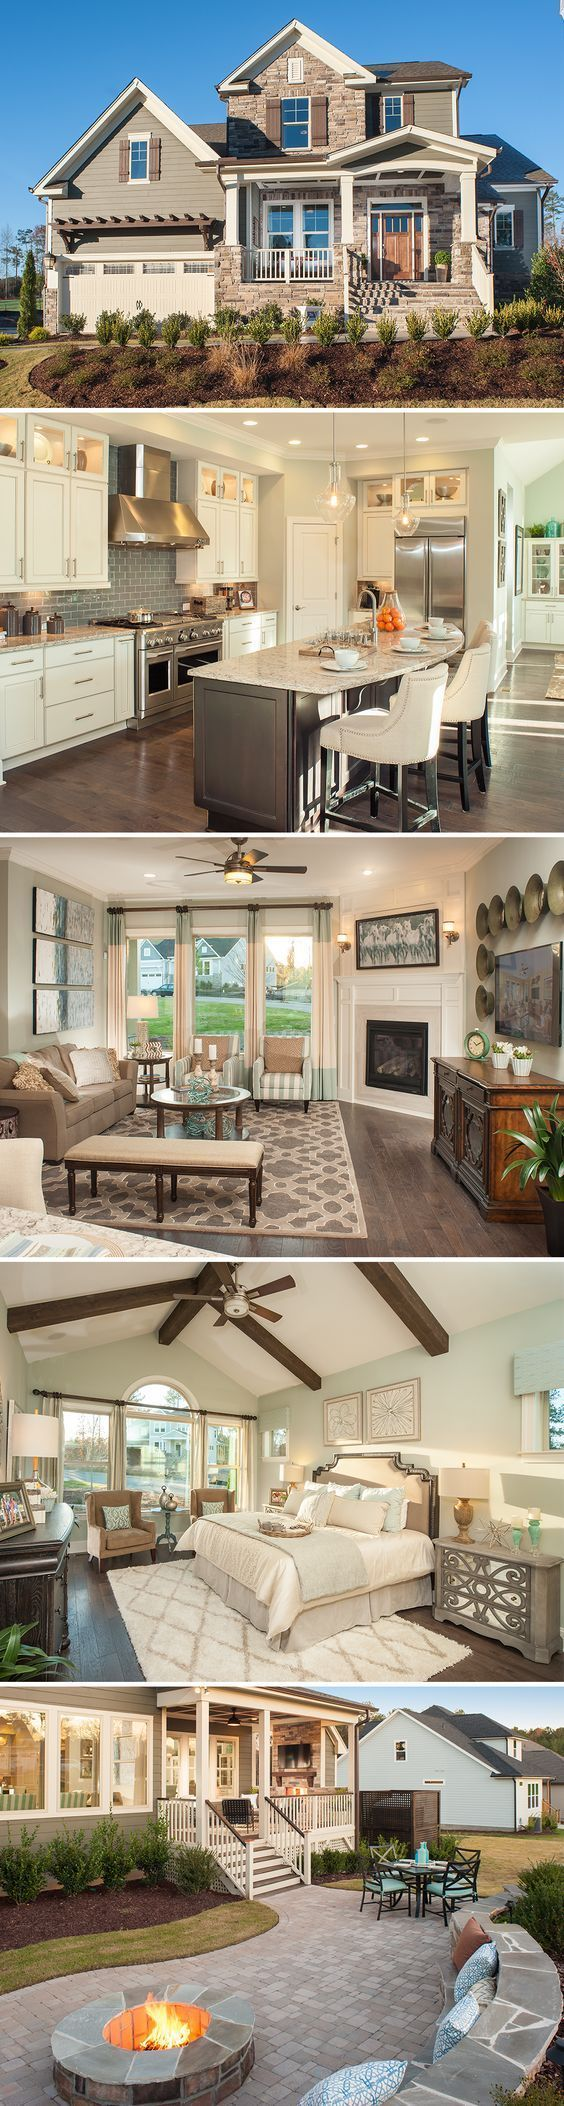 cool The Bentridge in the community of Montclair located in Chapel Hill, NC. See the ... by http://www.top10-home-decor-pics.xyz/european-home-decor/the-bentridge-in-the-community-of-montclair-located-in-chapel-hill-nc-see-the/